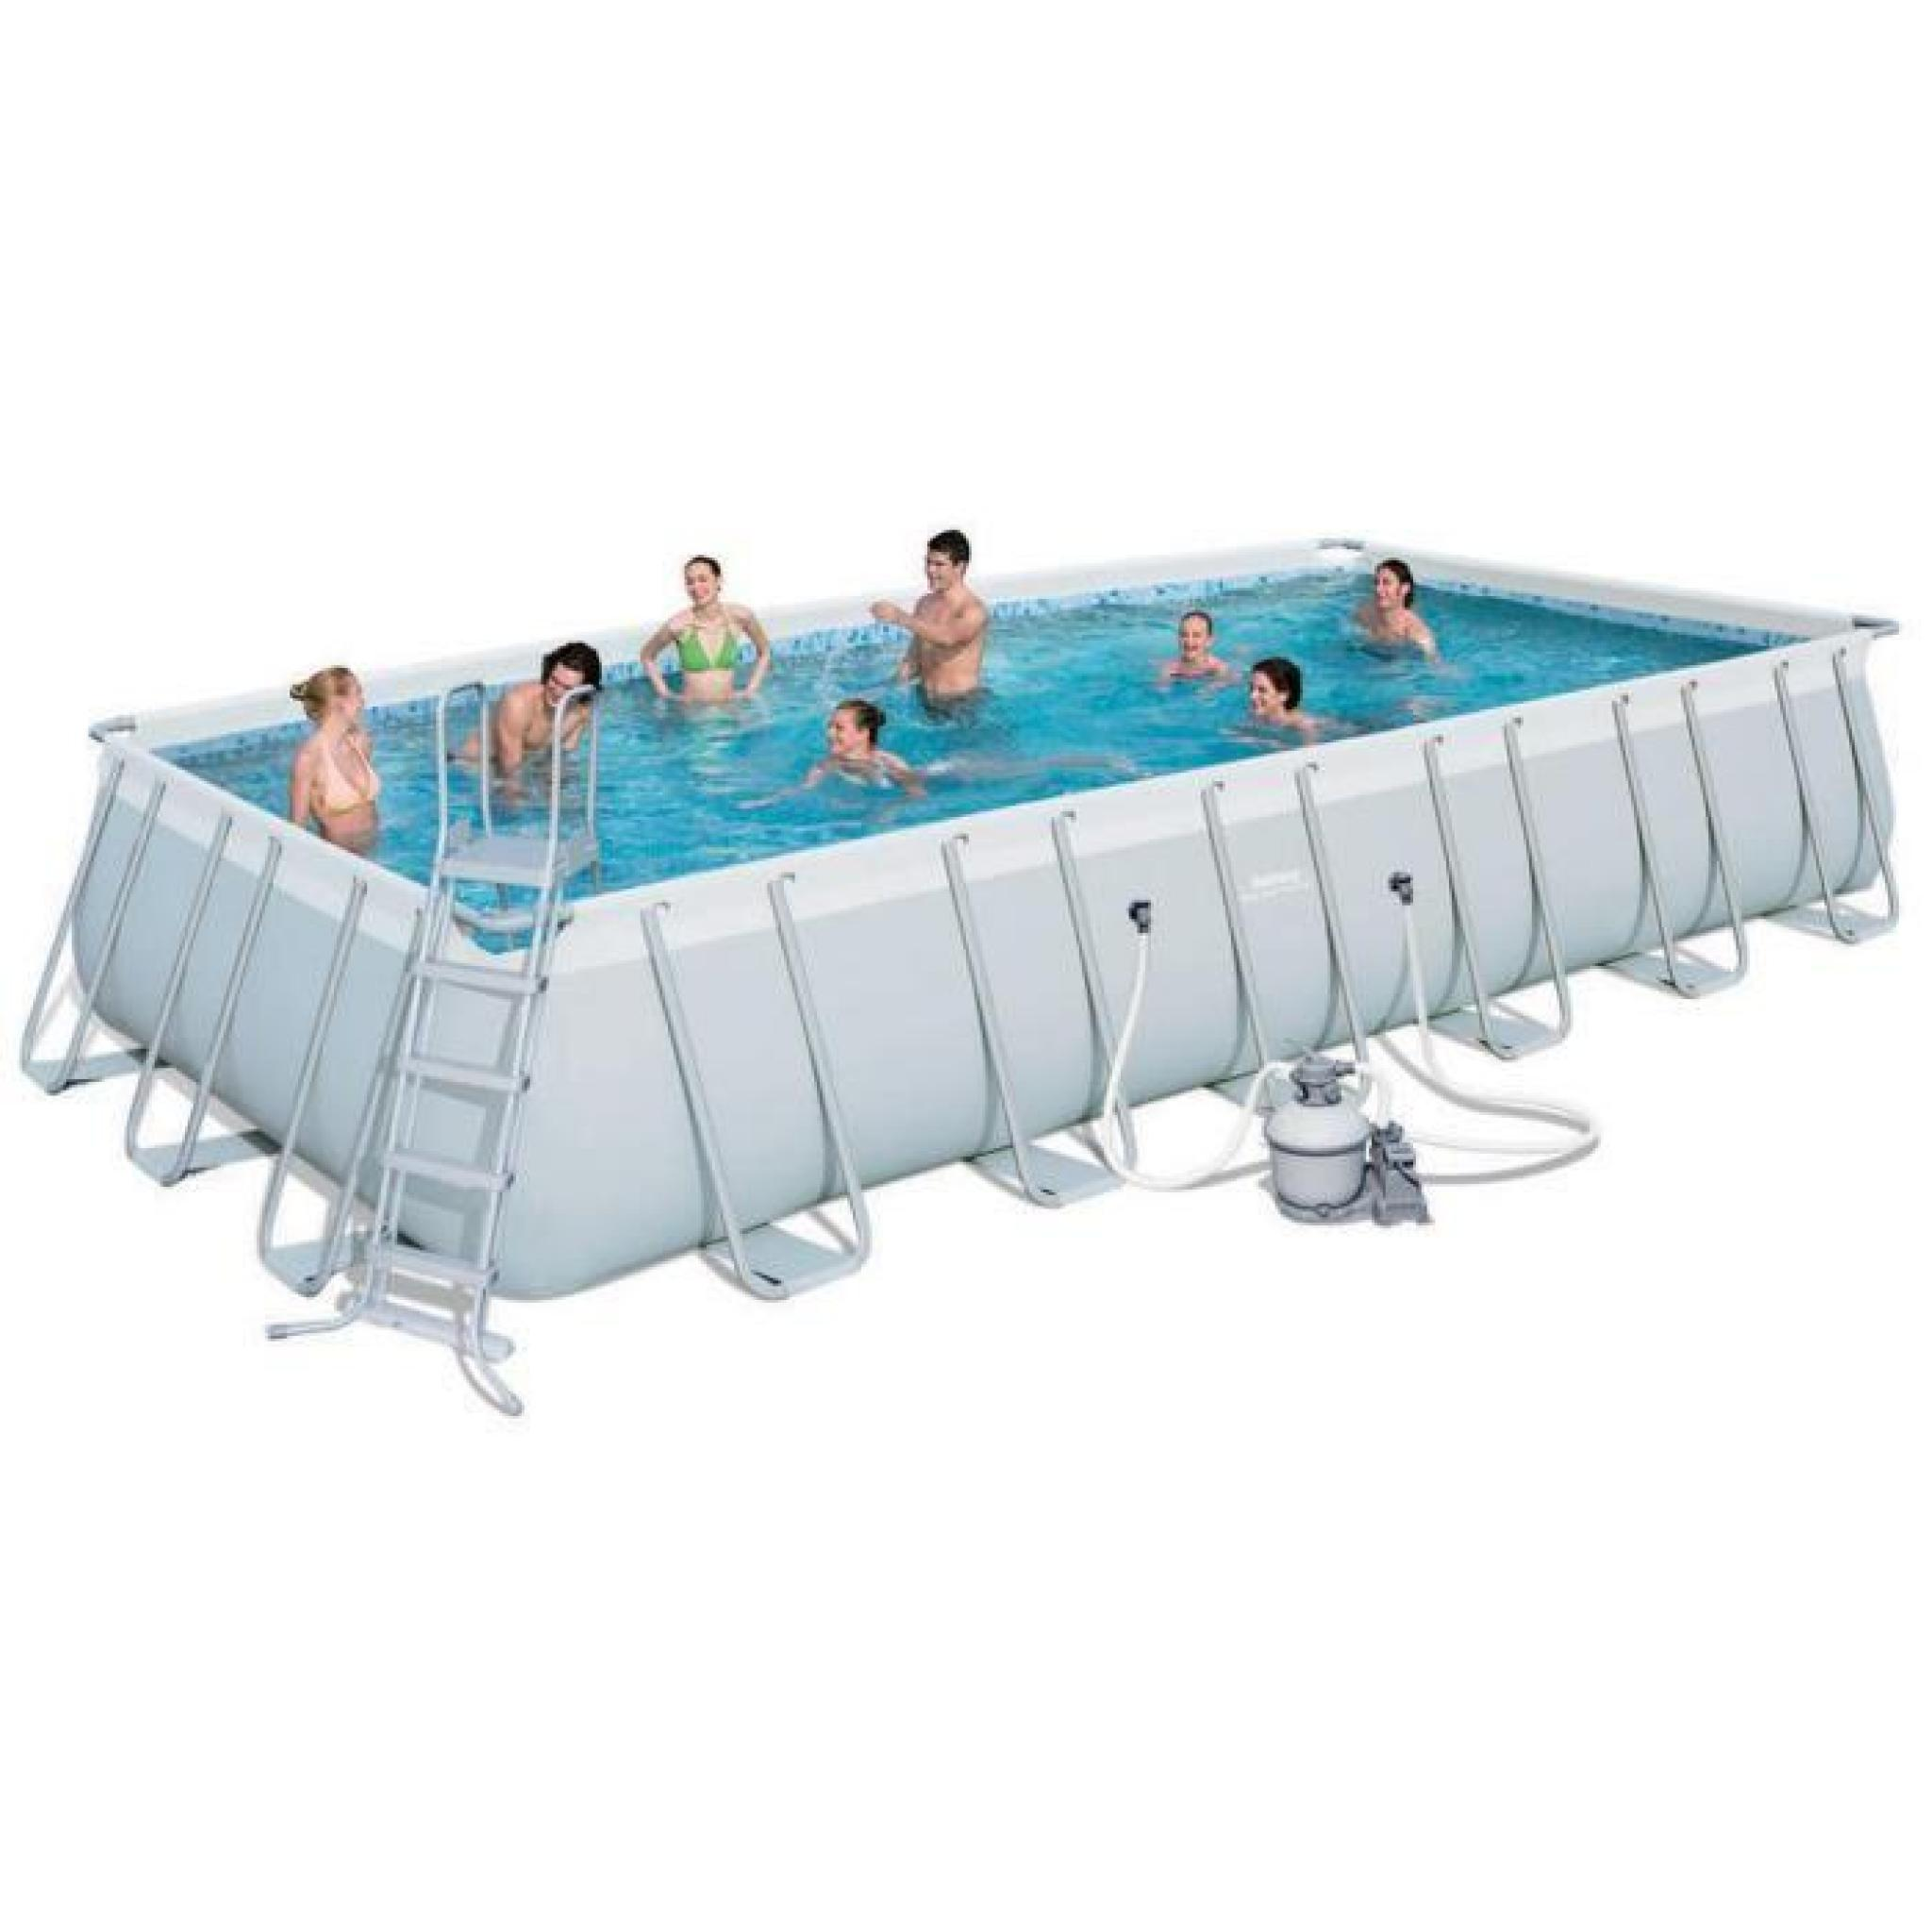 Piscine autoportante tubulaire power steel rectangl 4m12 for Piscina autoportante